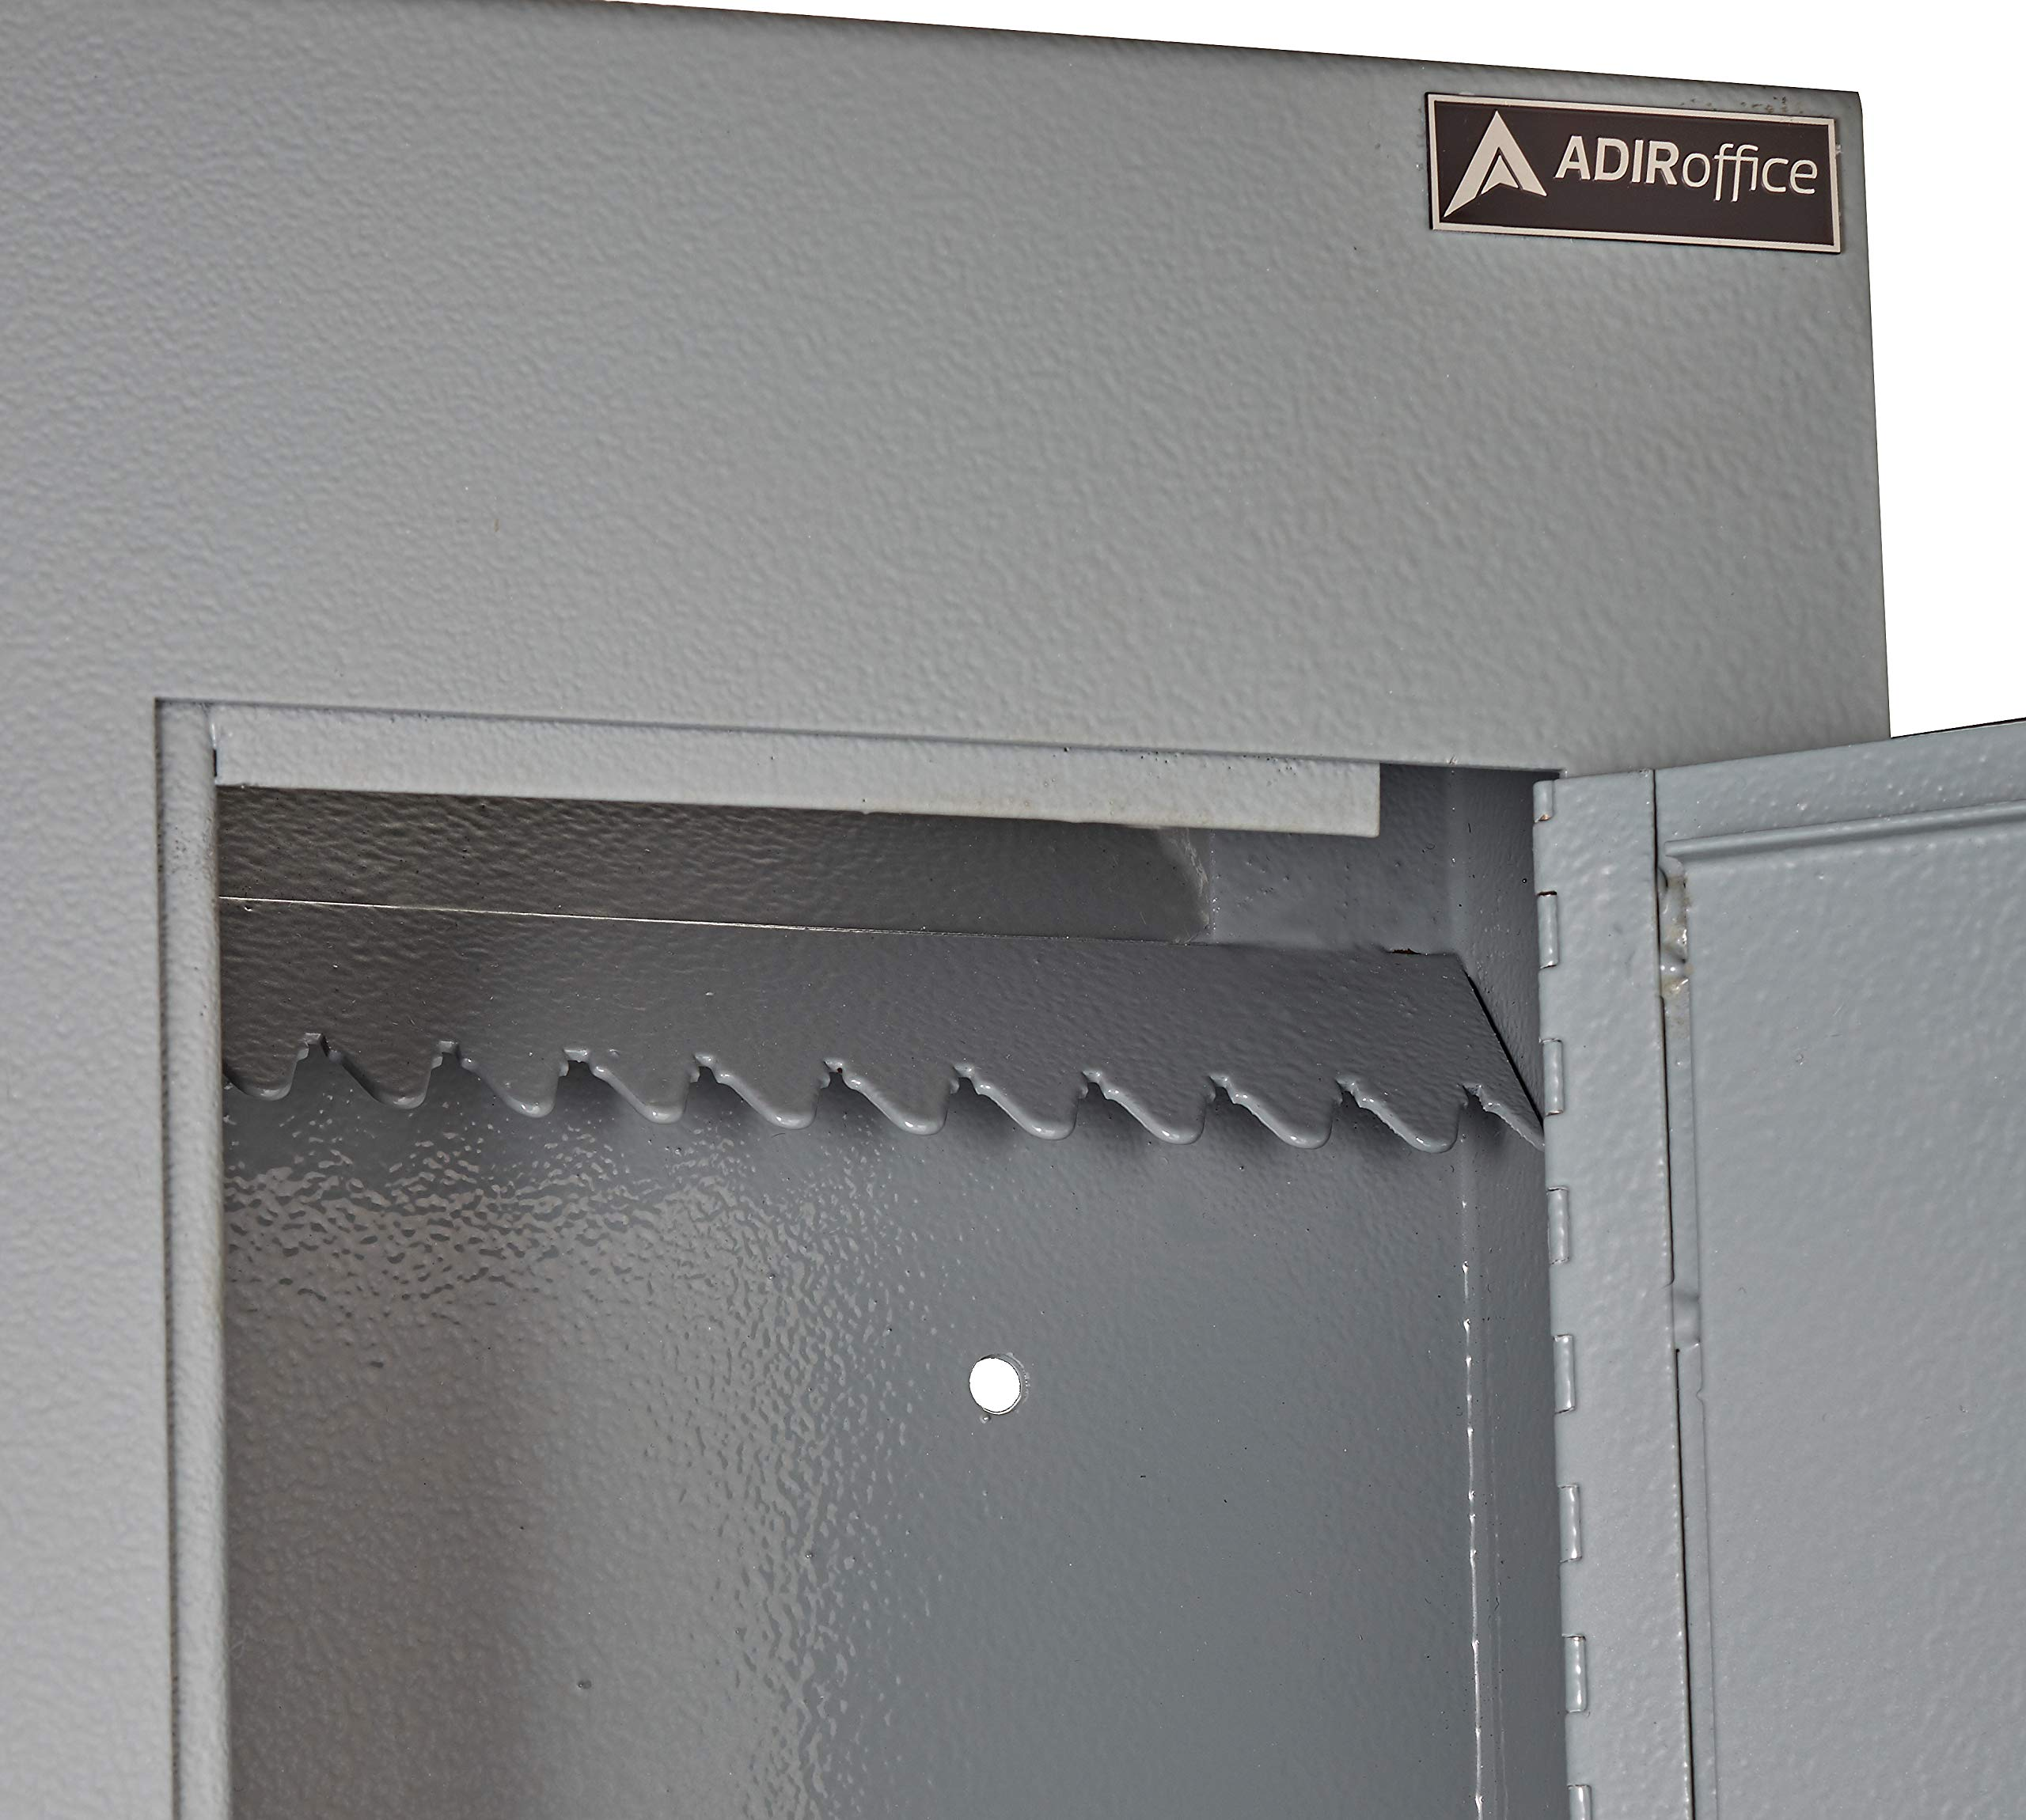 AdirOffice Through The Wall Drop Box Safe (Black/Grey/White) - Durable Thick Steel w/Adjustable Chute - Mail Vault for Home Office Hotel Apartment (Grey) by AdirOffice (Image #2)